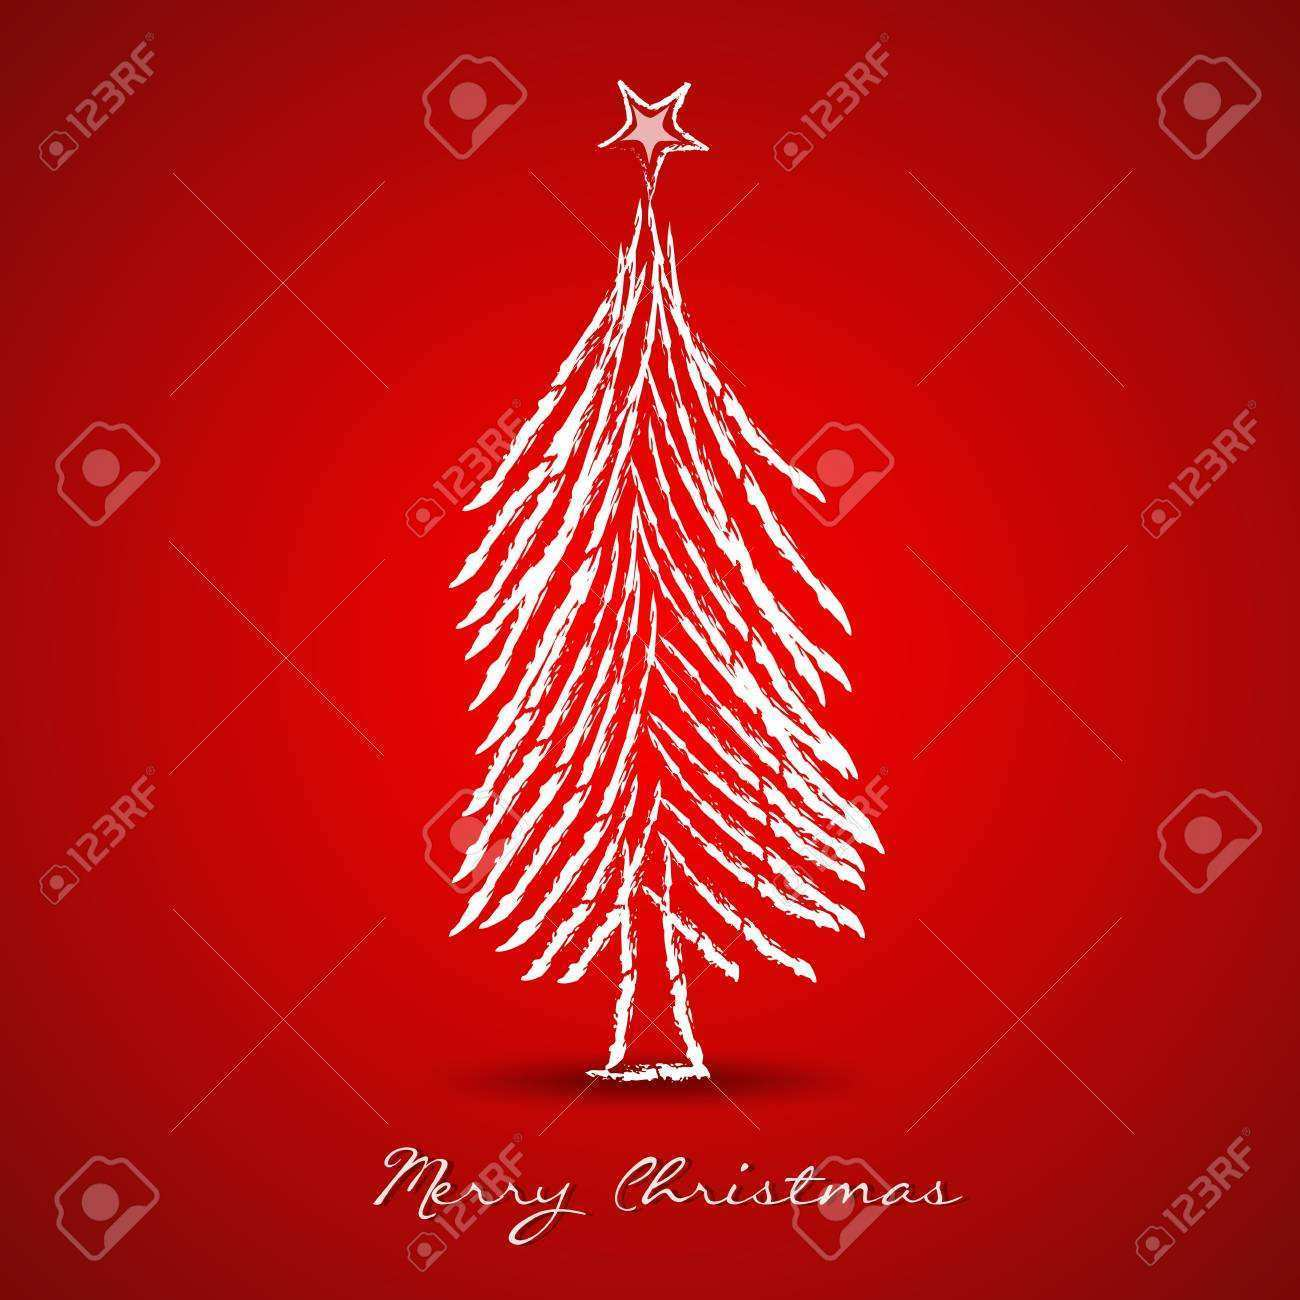 39 Free Christmas Card Layout Vector Templates with Christmas Card Layout Vector